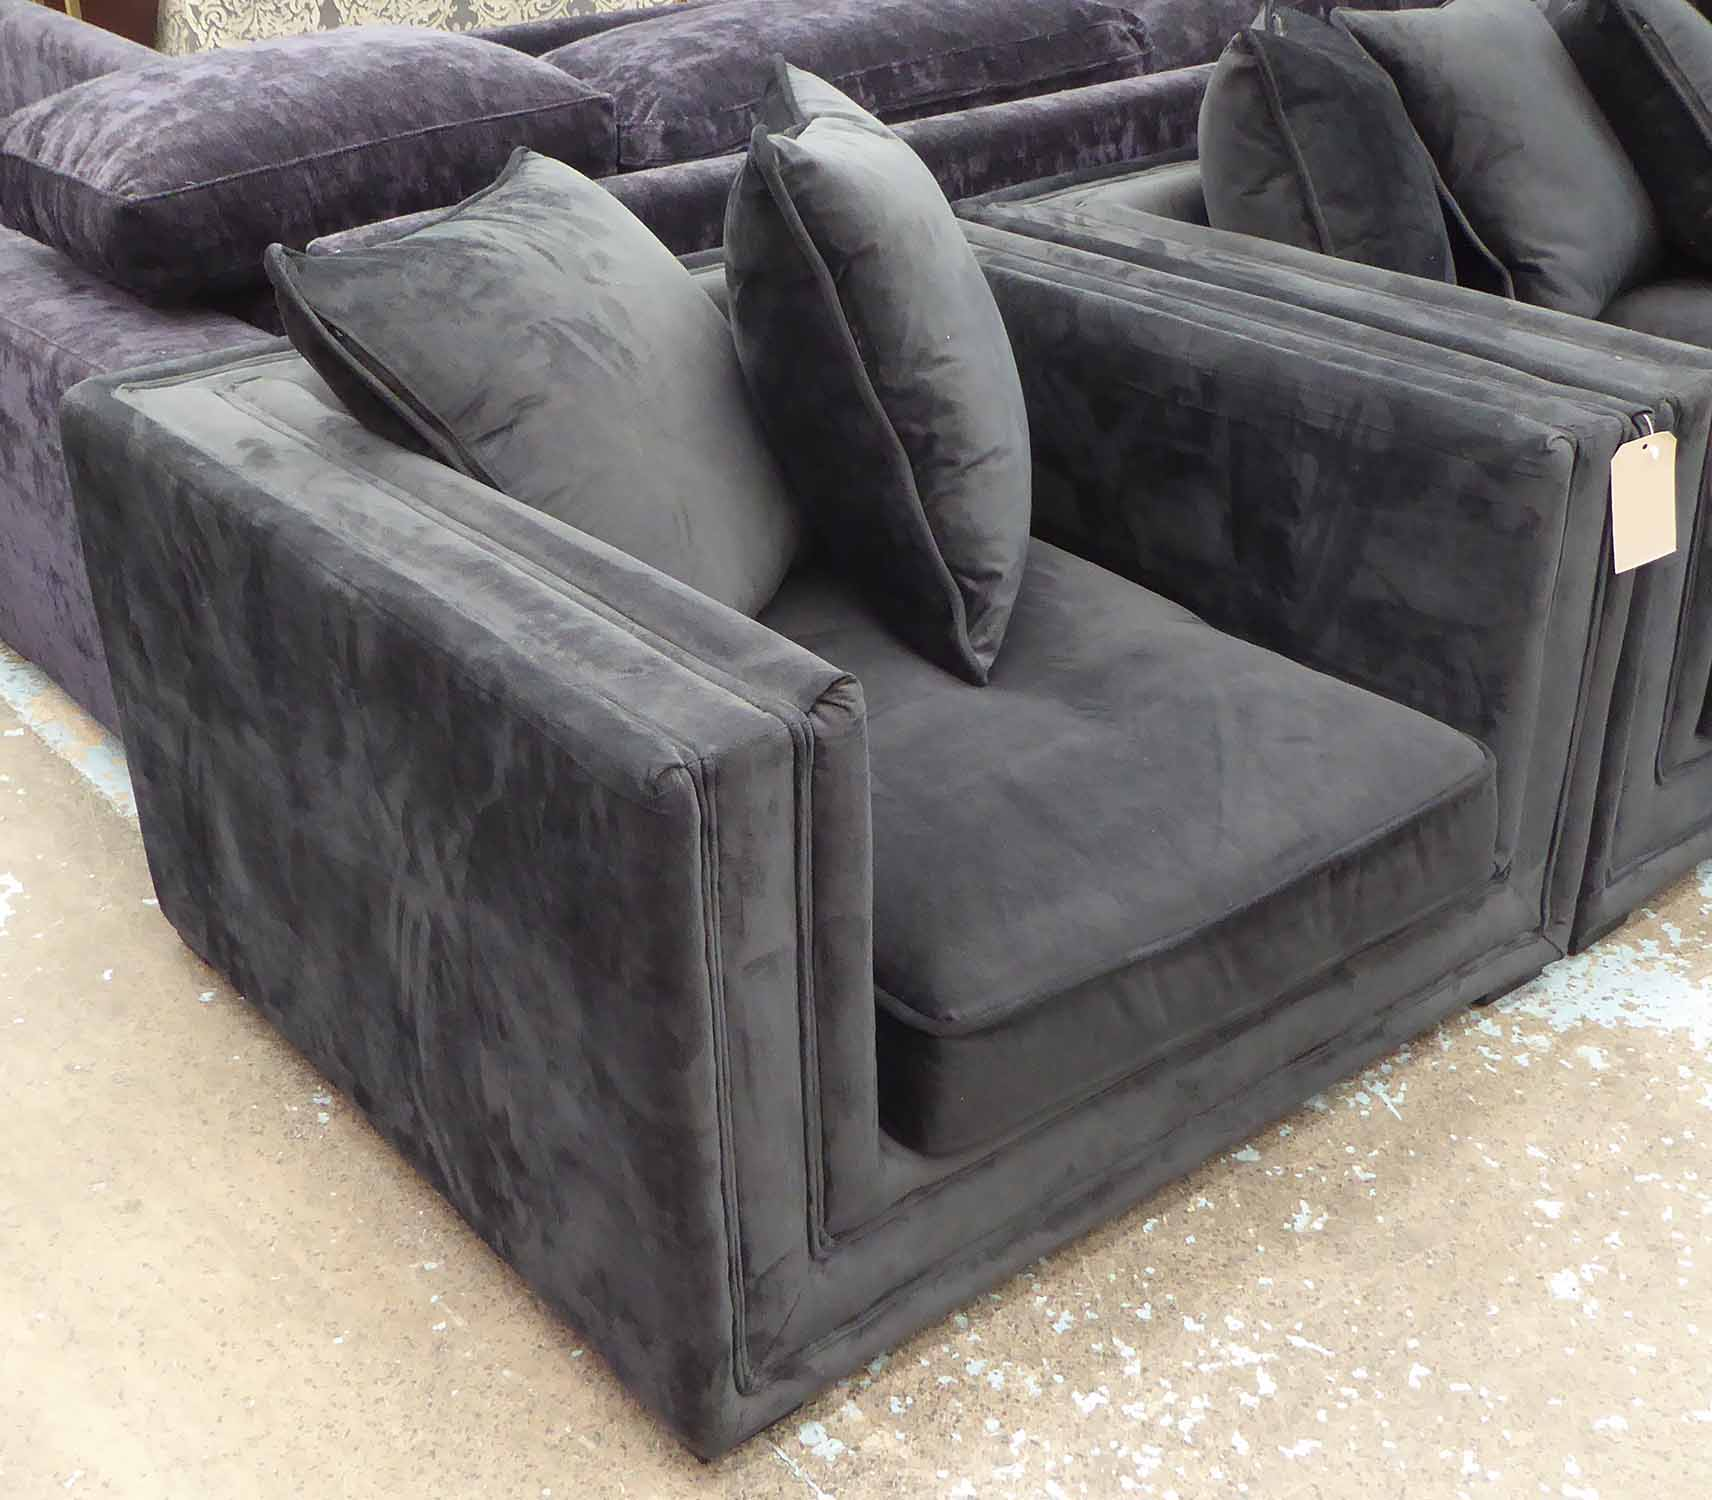 Lot 50 - ARMCHAIR, to match previous lot with two black cushions, 110cm x 64cm H x 103cm.